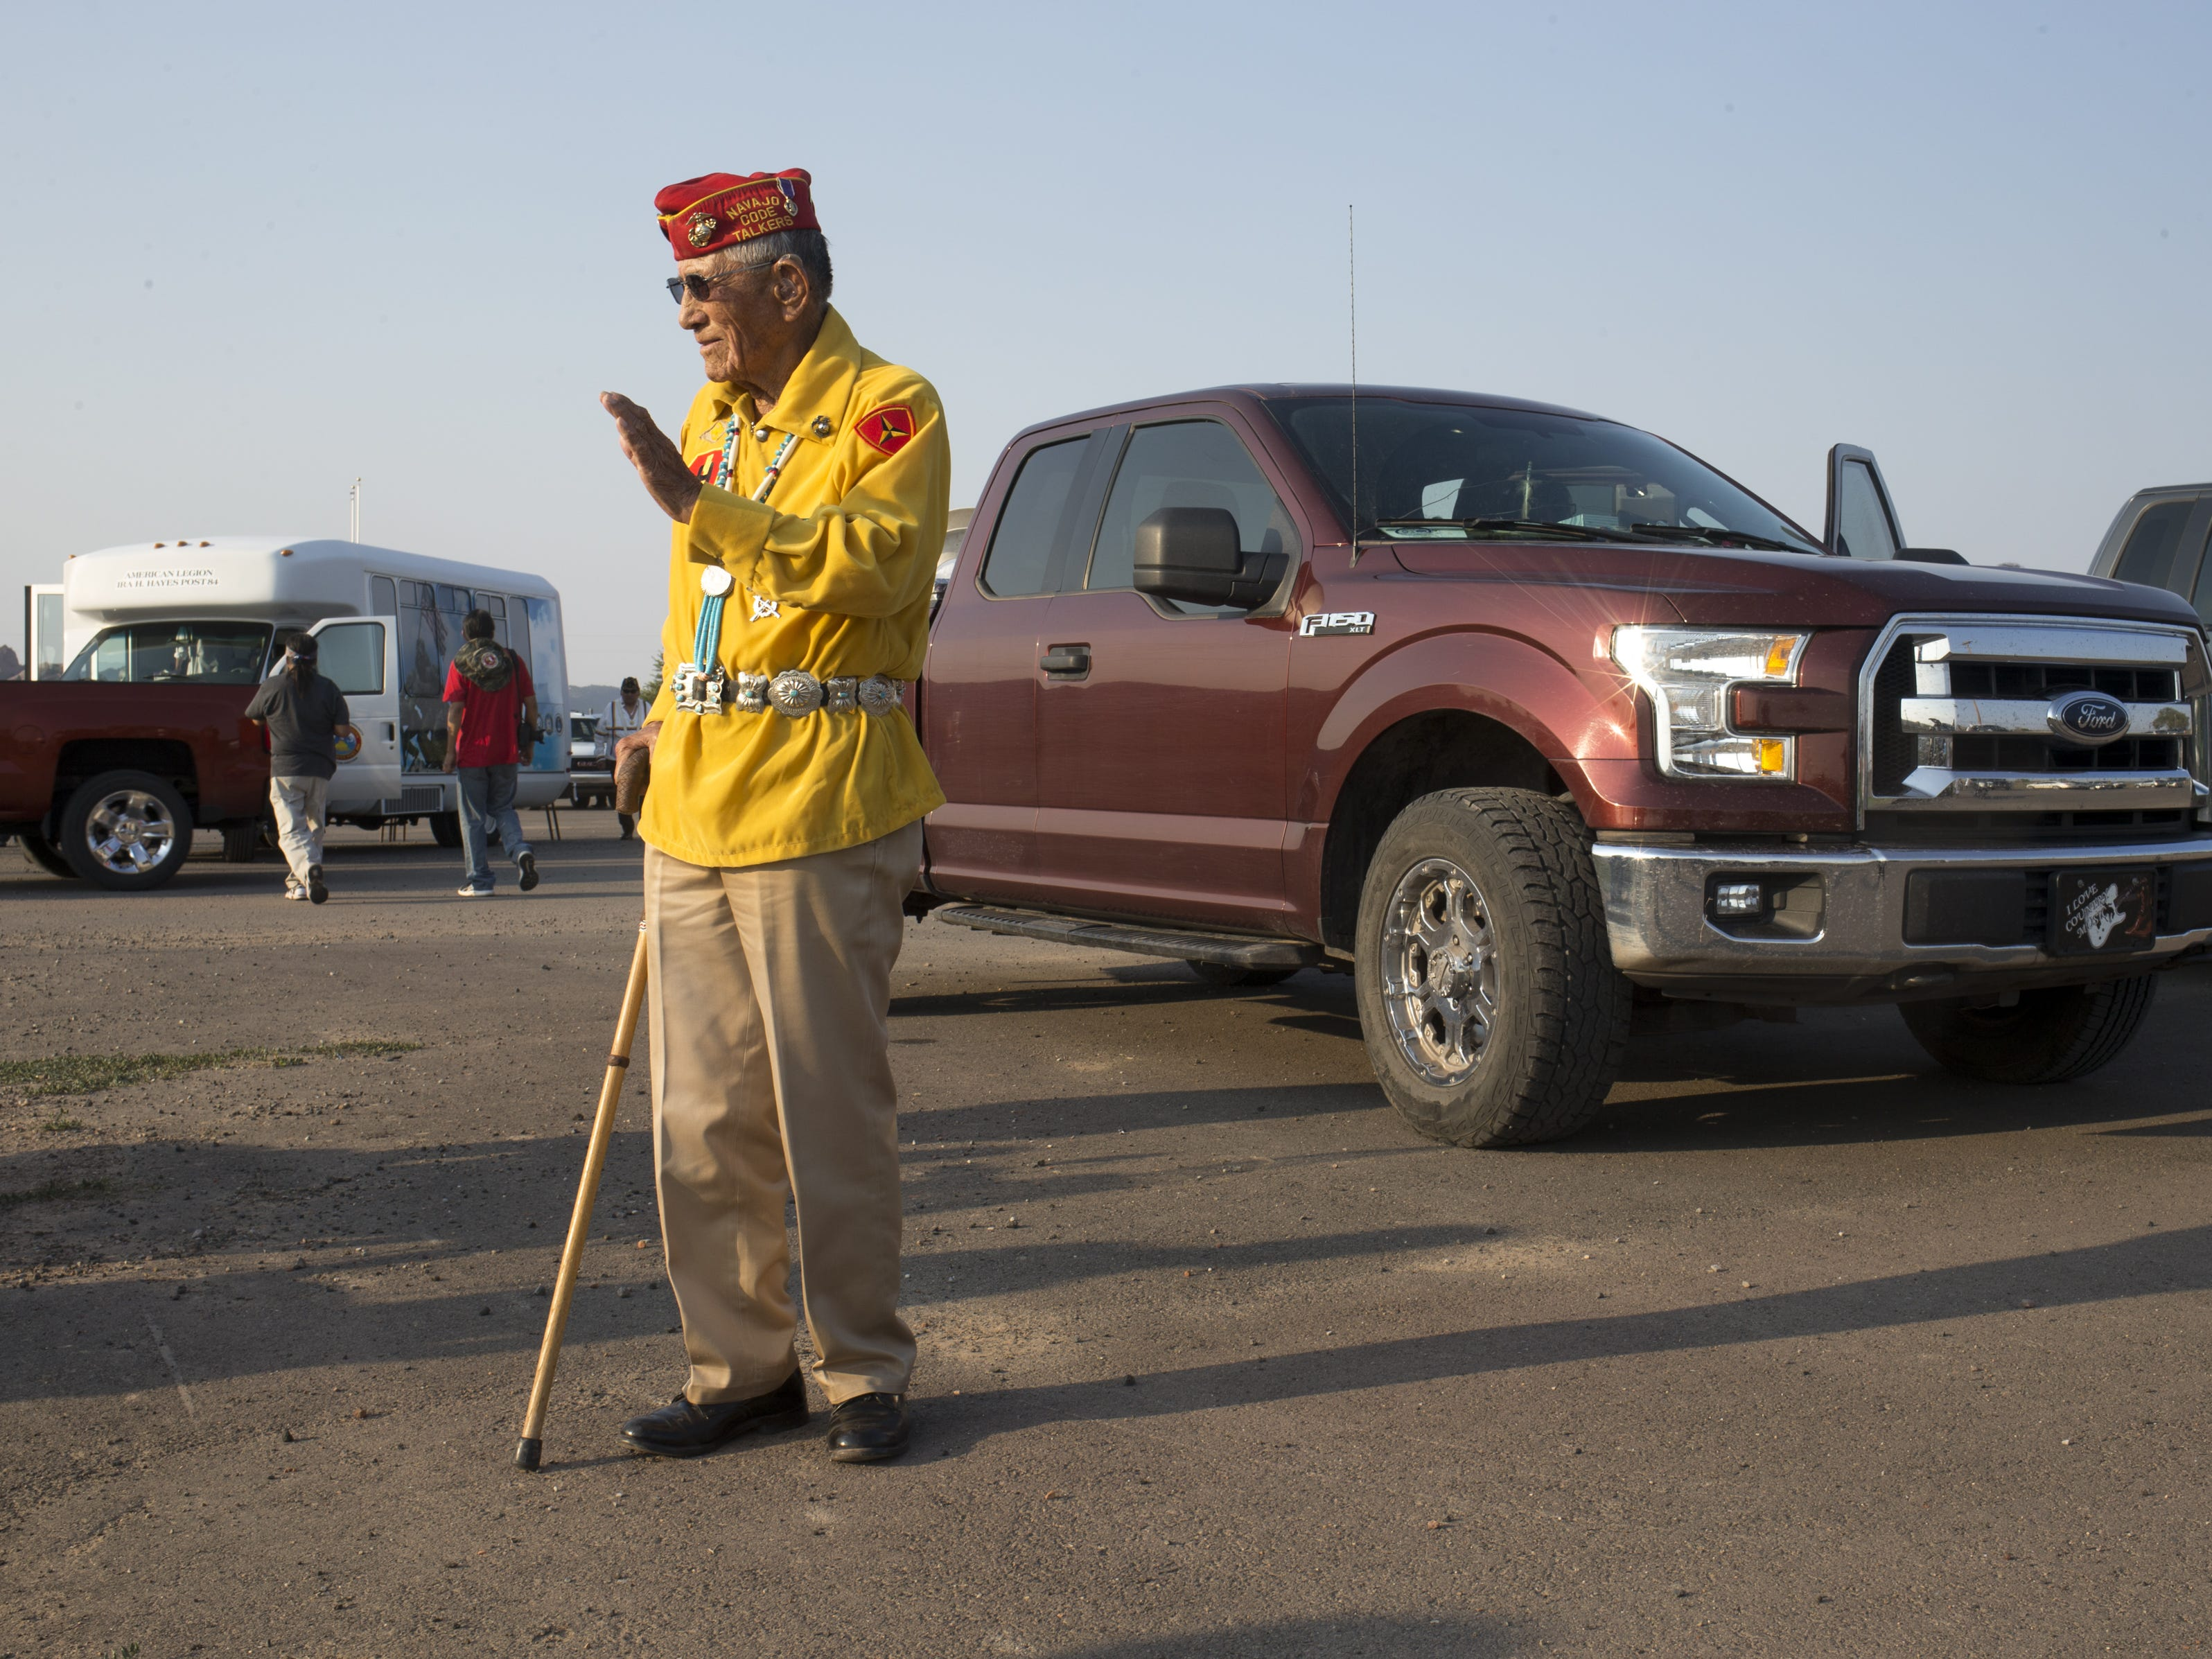 Navajo Code Talker John Kinsel, Sr. waits for the start of the Navajo Nation Code Talkers Day parade on Aug. 14, 2018, at the Navajo Nation Fairgrounds in Window Rock.